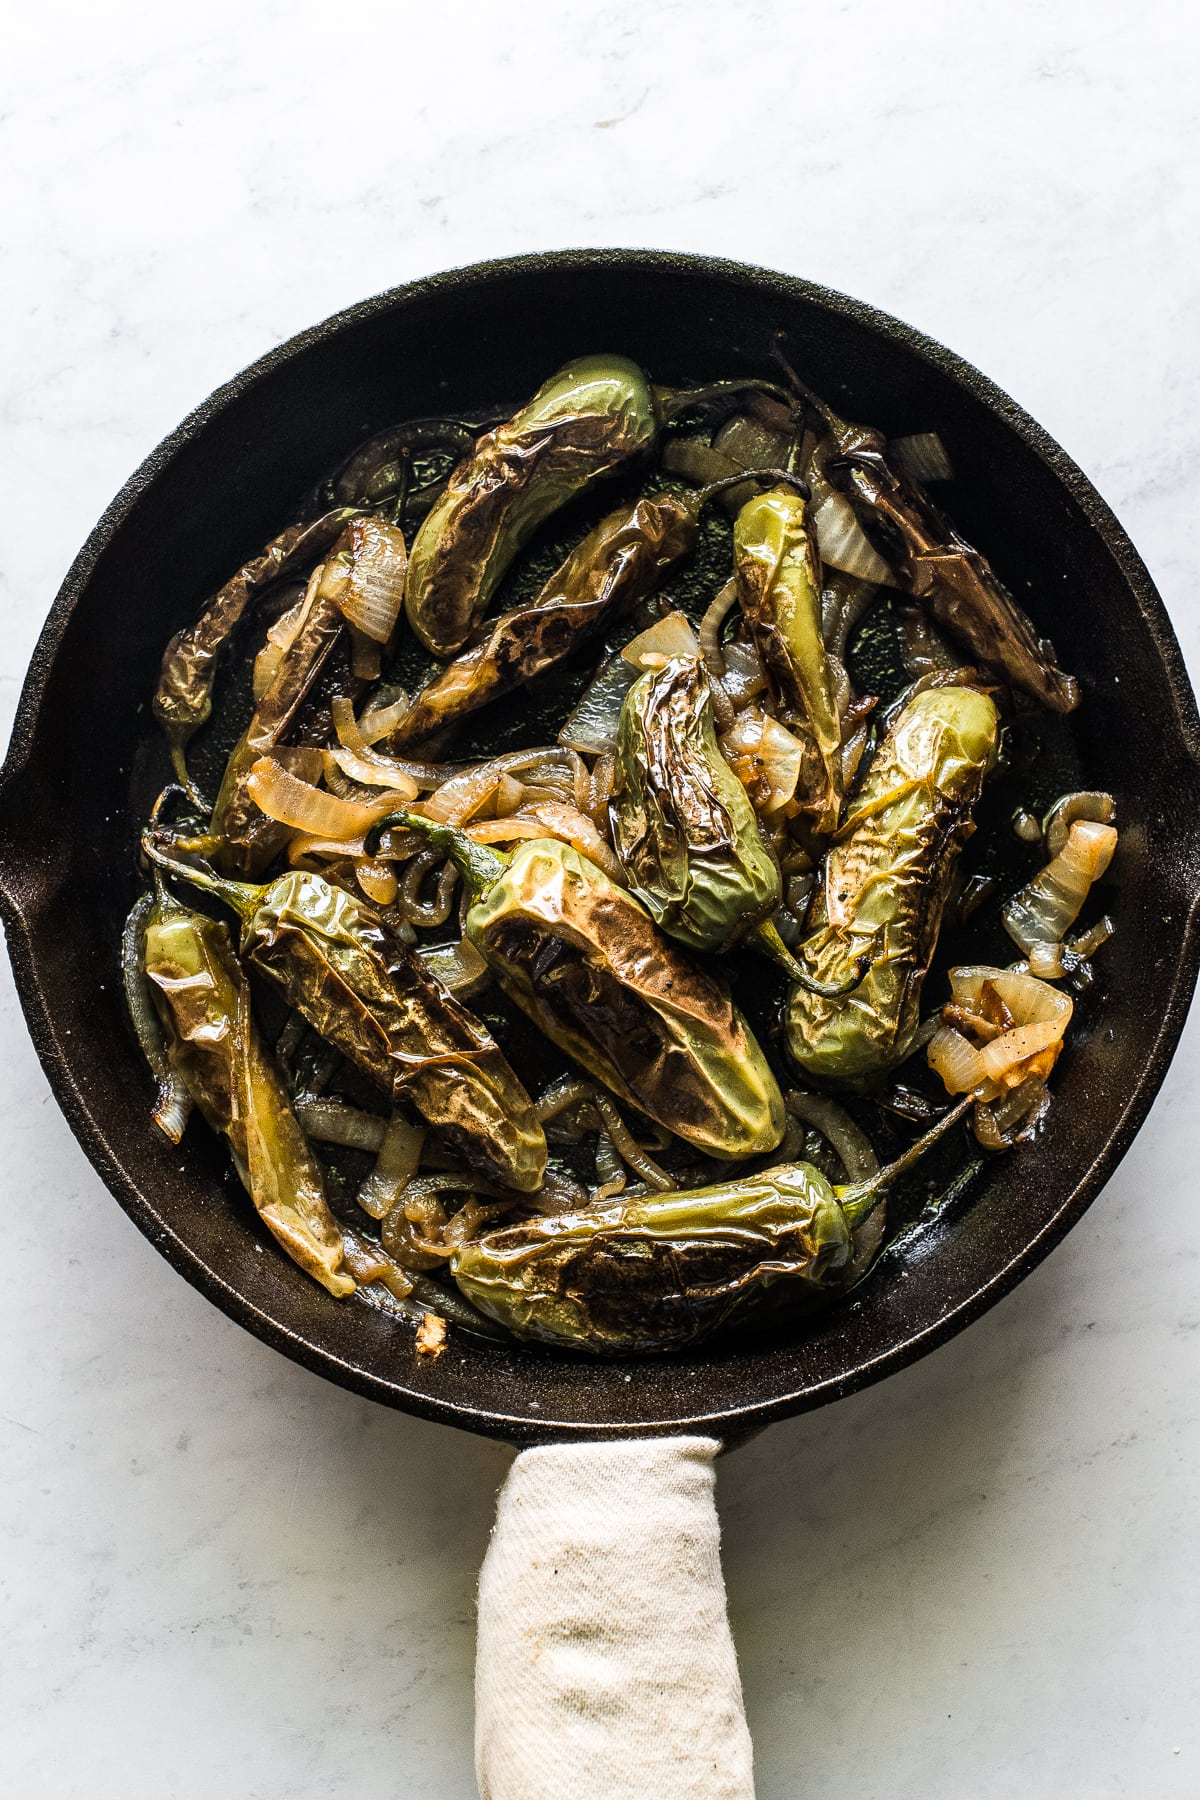 Chiles toreados in a cast iron skillet.